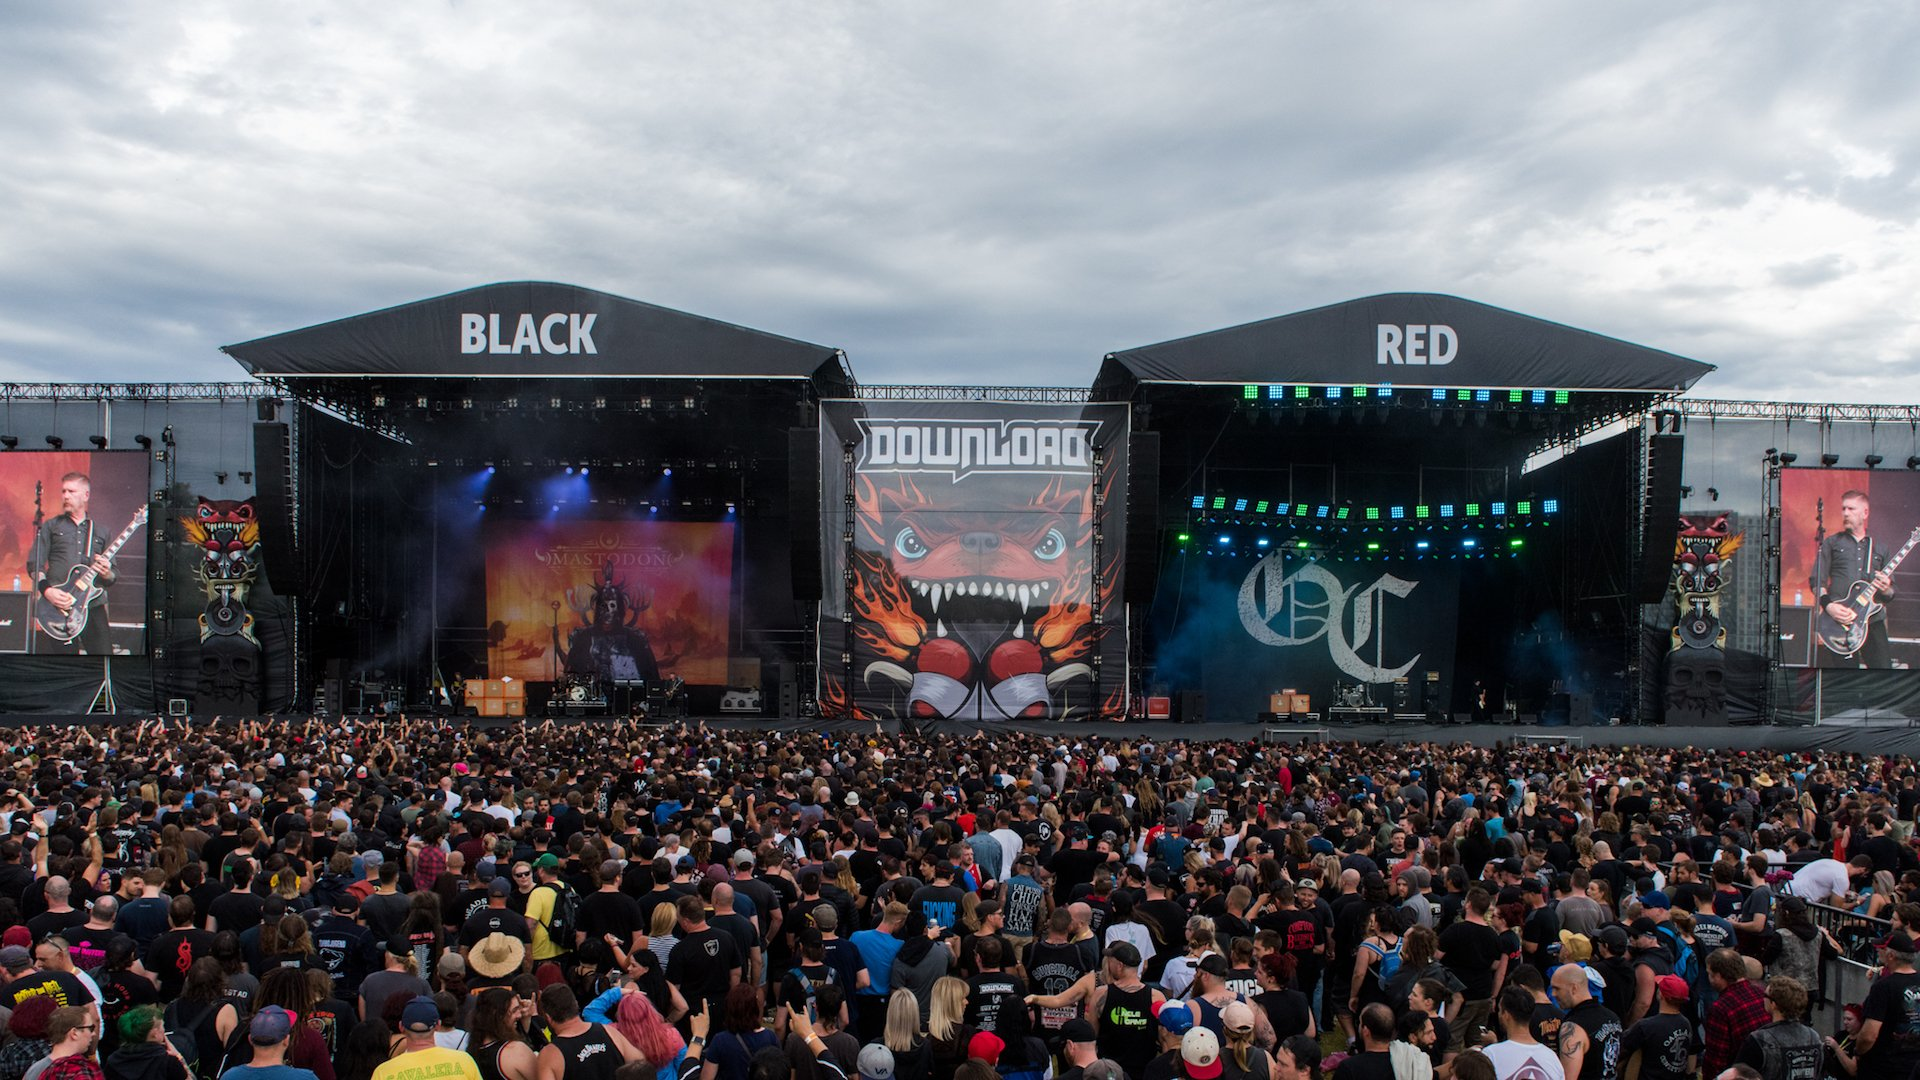 download festival melbourne 2018 supplied credit Ian Laidlaw